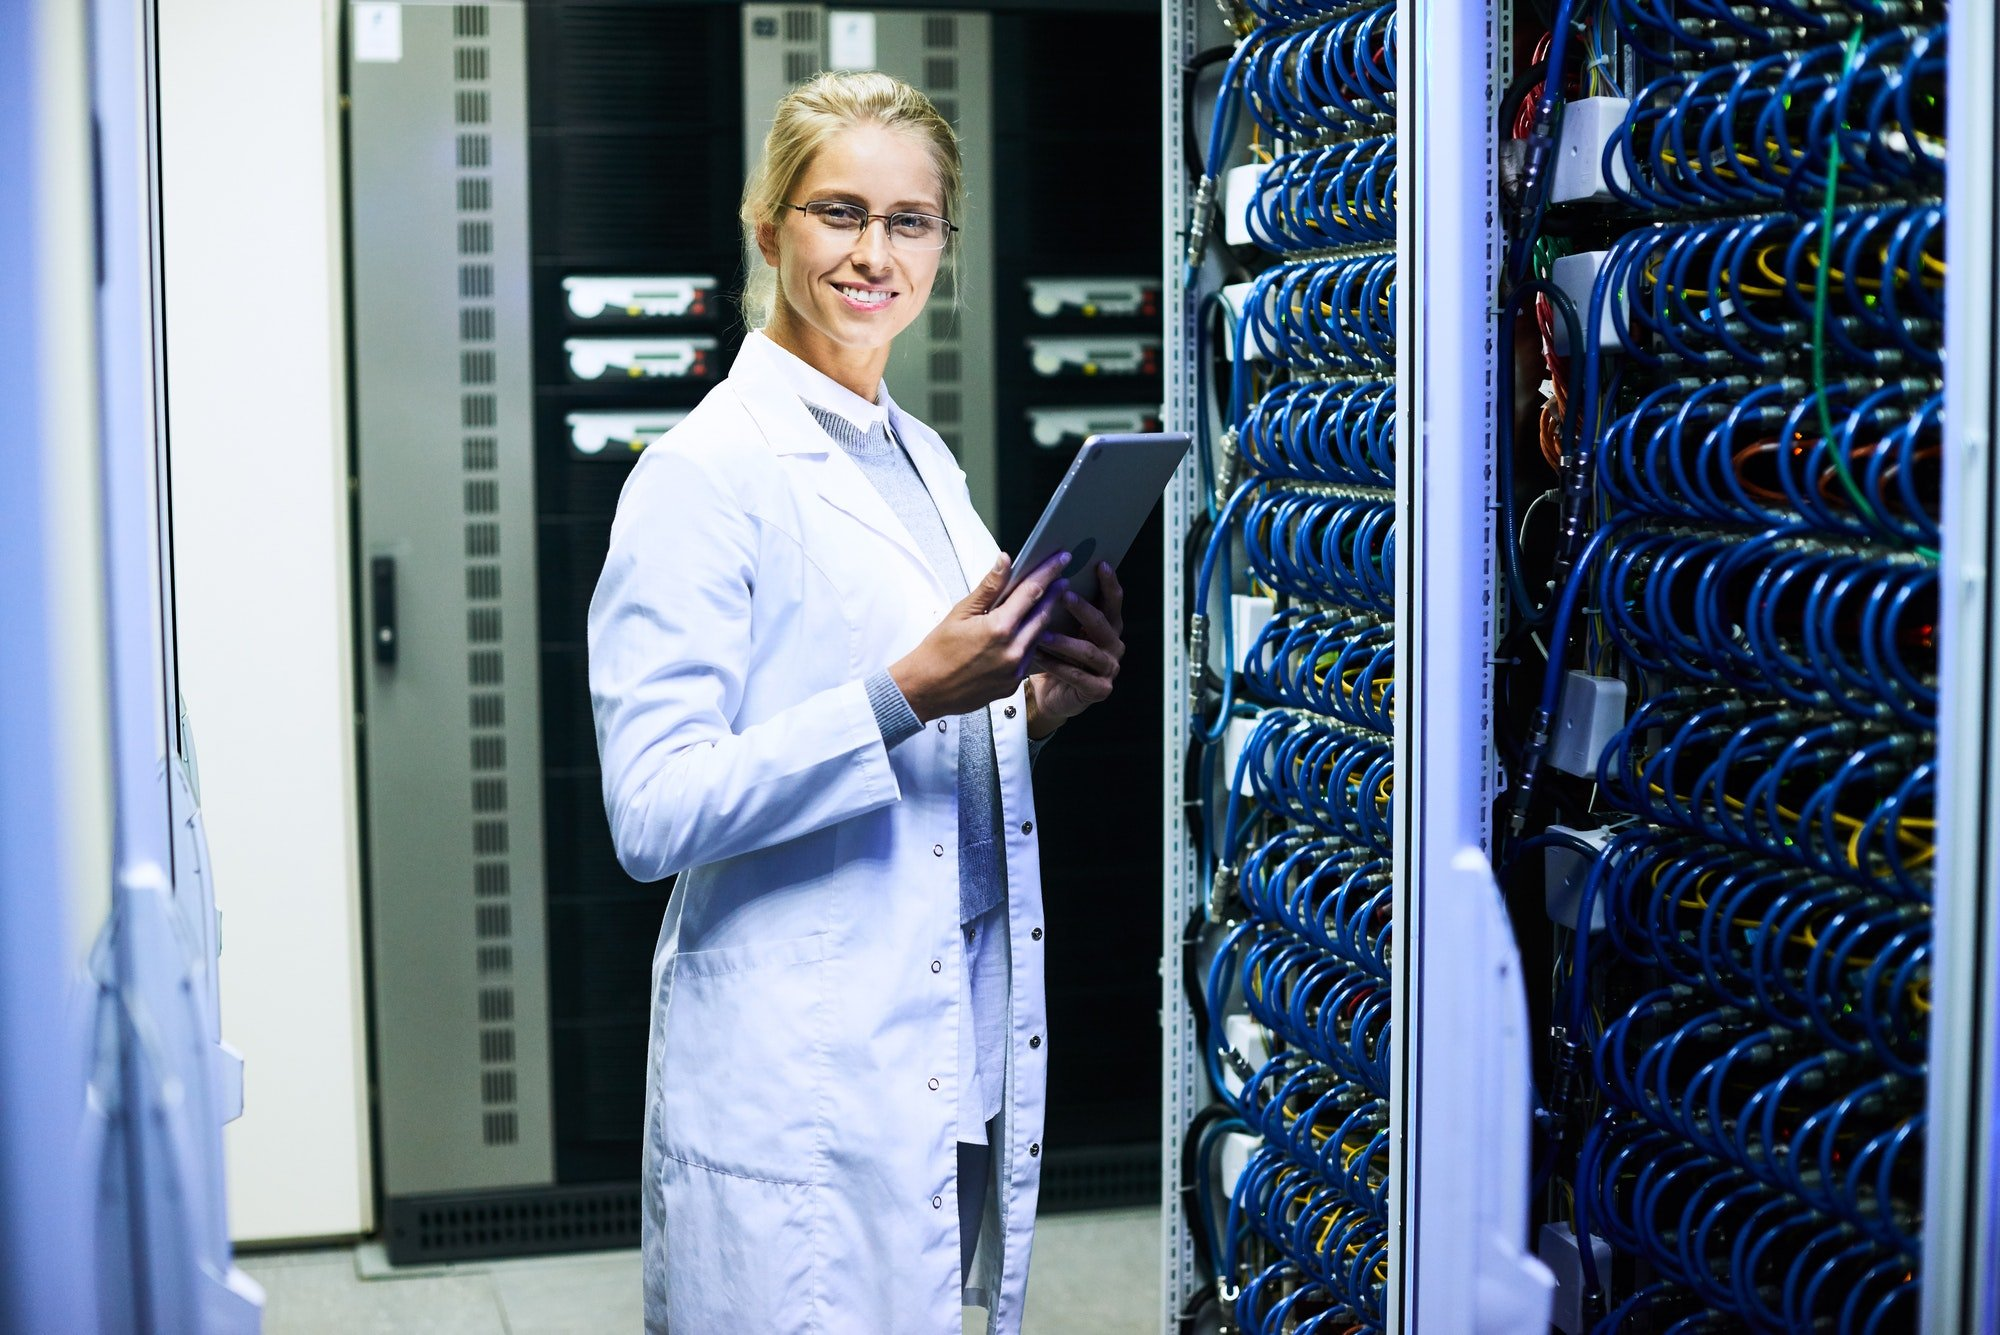 benefits of server virtualization for small businesses